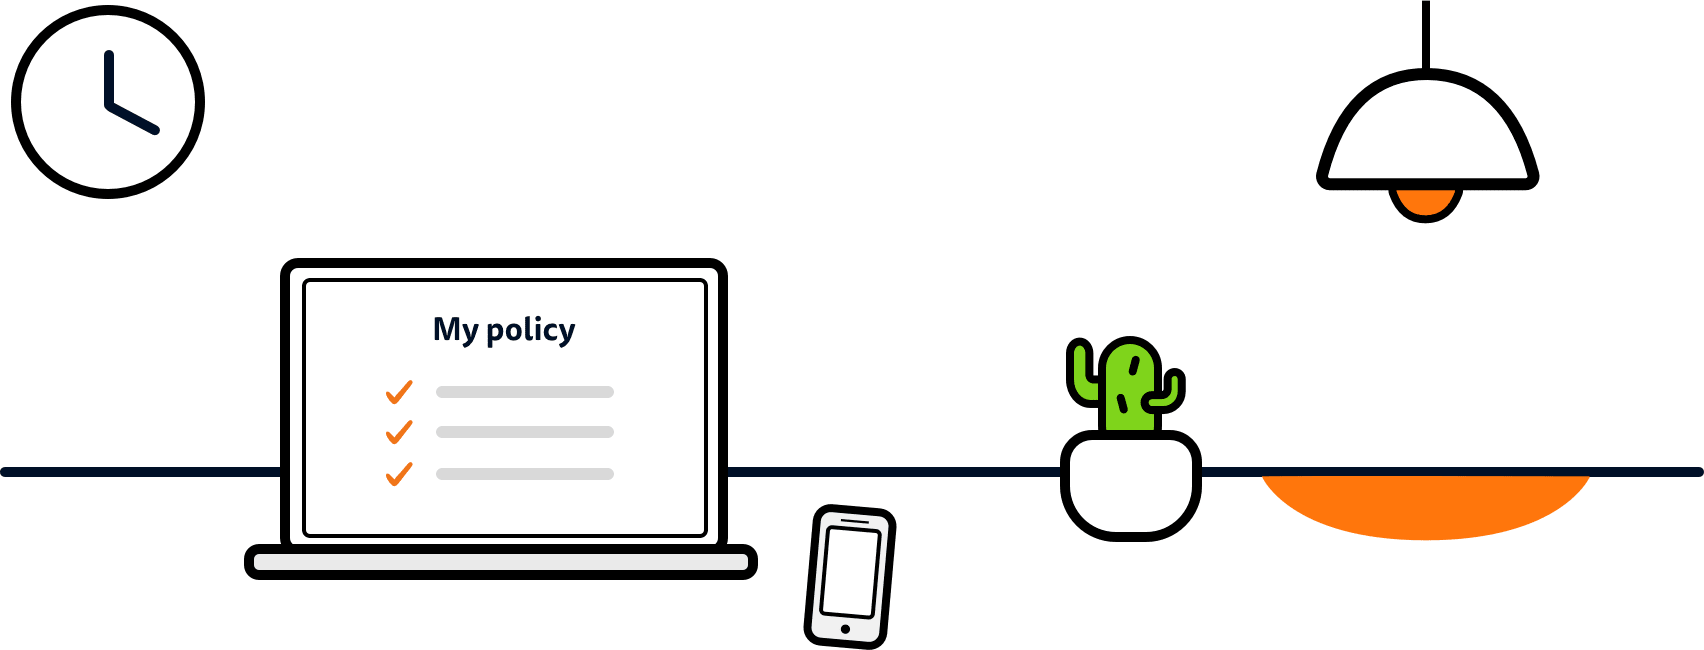 Manage your policy online